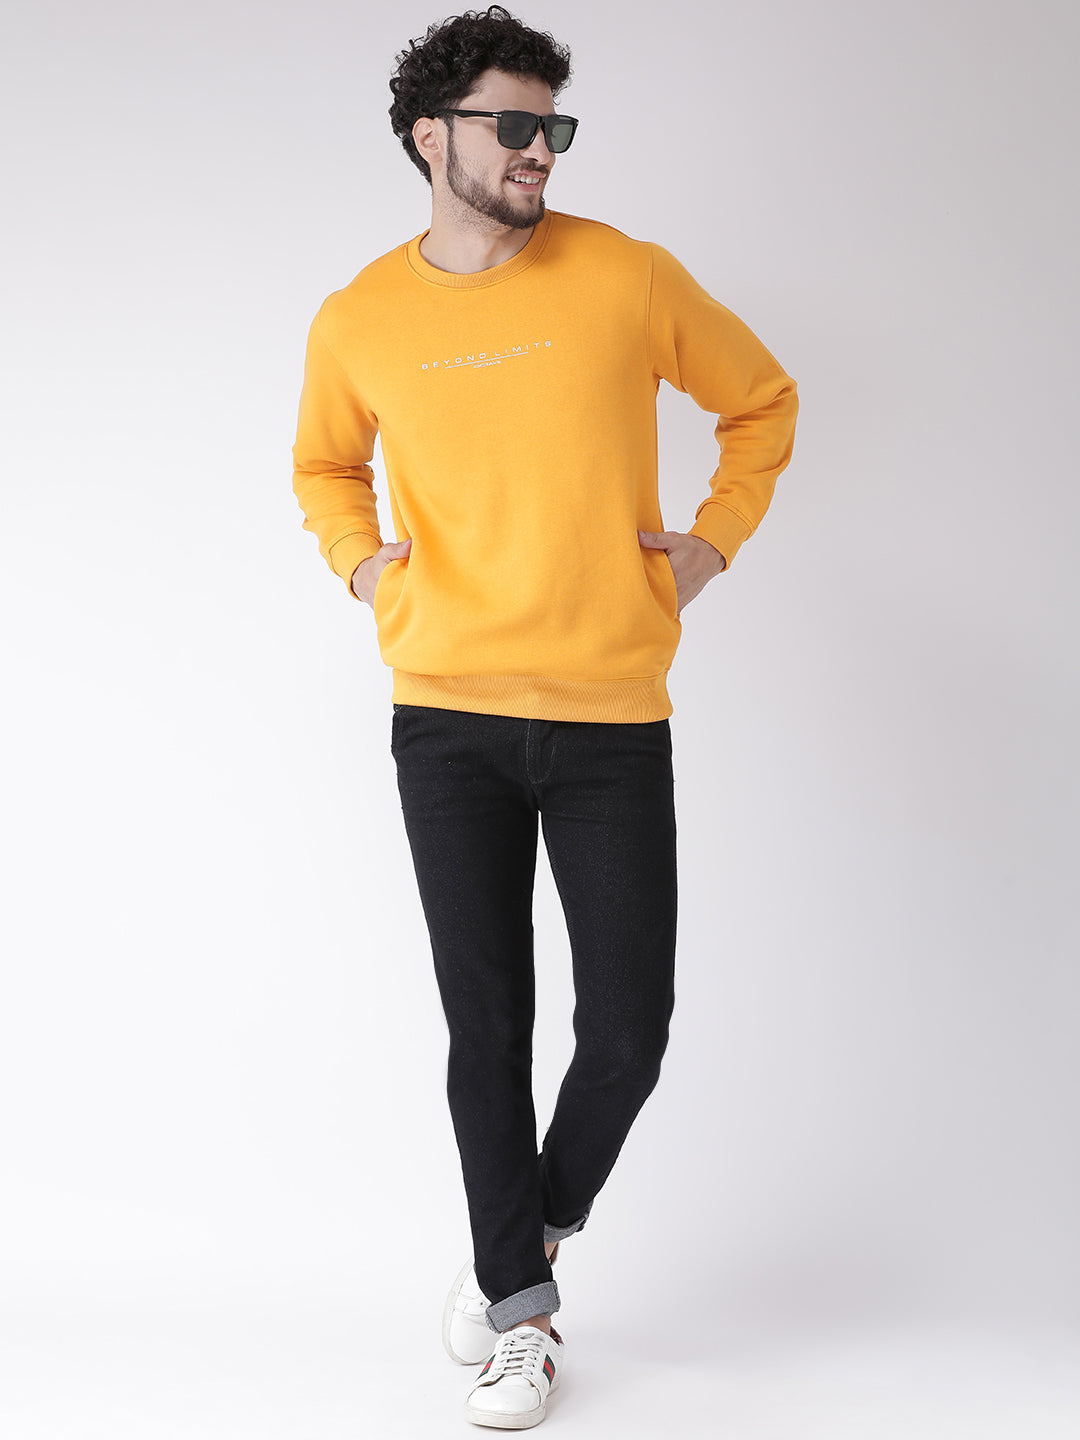 Octave Apparels Yellow Sweatshirt for Men